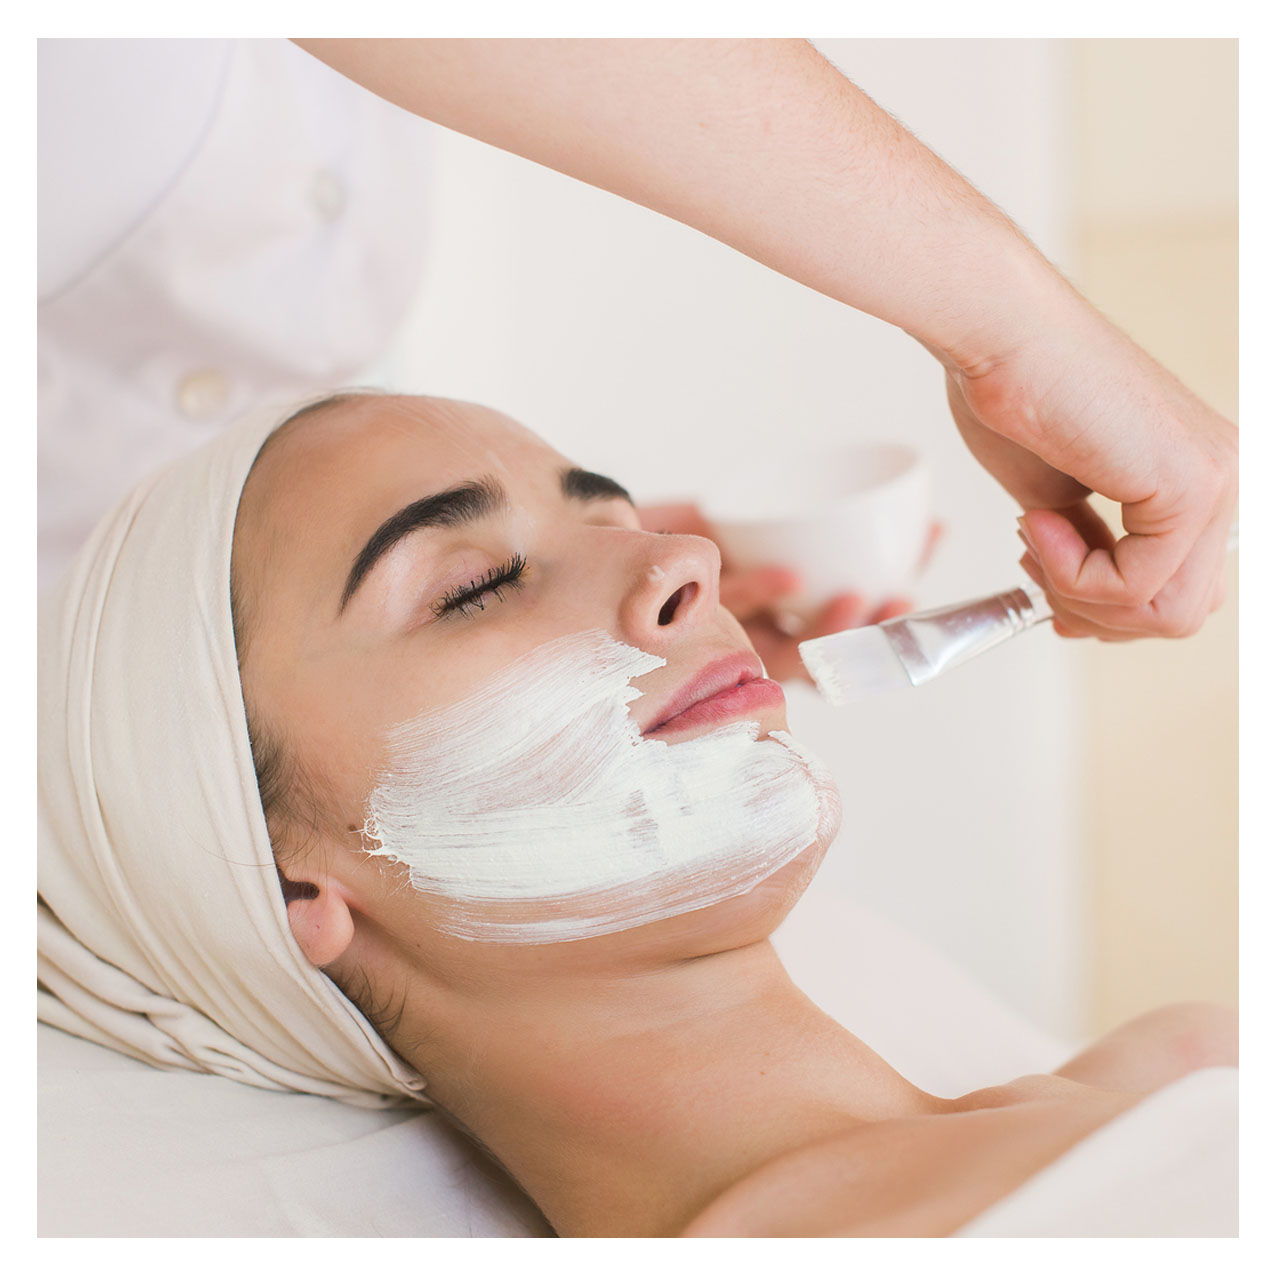 Chemical Peel Treatments - Our philosophy at Vanilla Sugar Face & Body is chemical peels should not cause damage to the living dermis layer of the skin. Our peels are gentle, yet highly effective and achieve great results with acne scars, melasma, and sun spots. Every peel is fully customized to treat your specific skin type and concern. We highly recommend that when starting a peel series to get on a home care routine that will work well with your peels to achieve the results you are looking for.